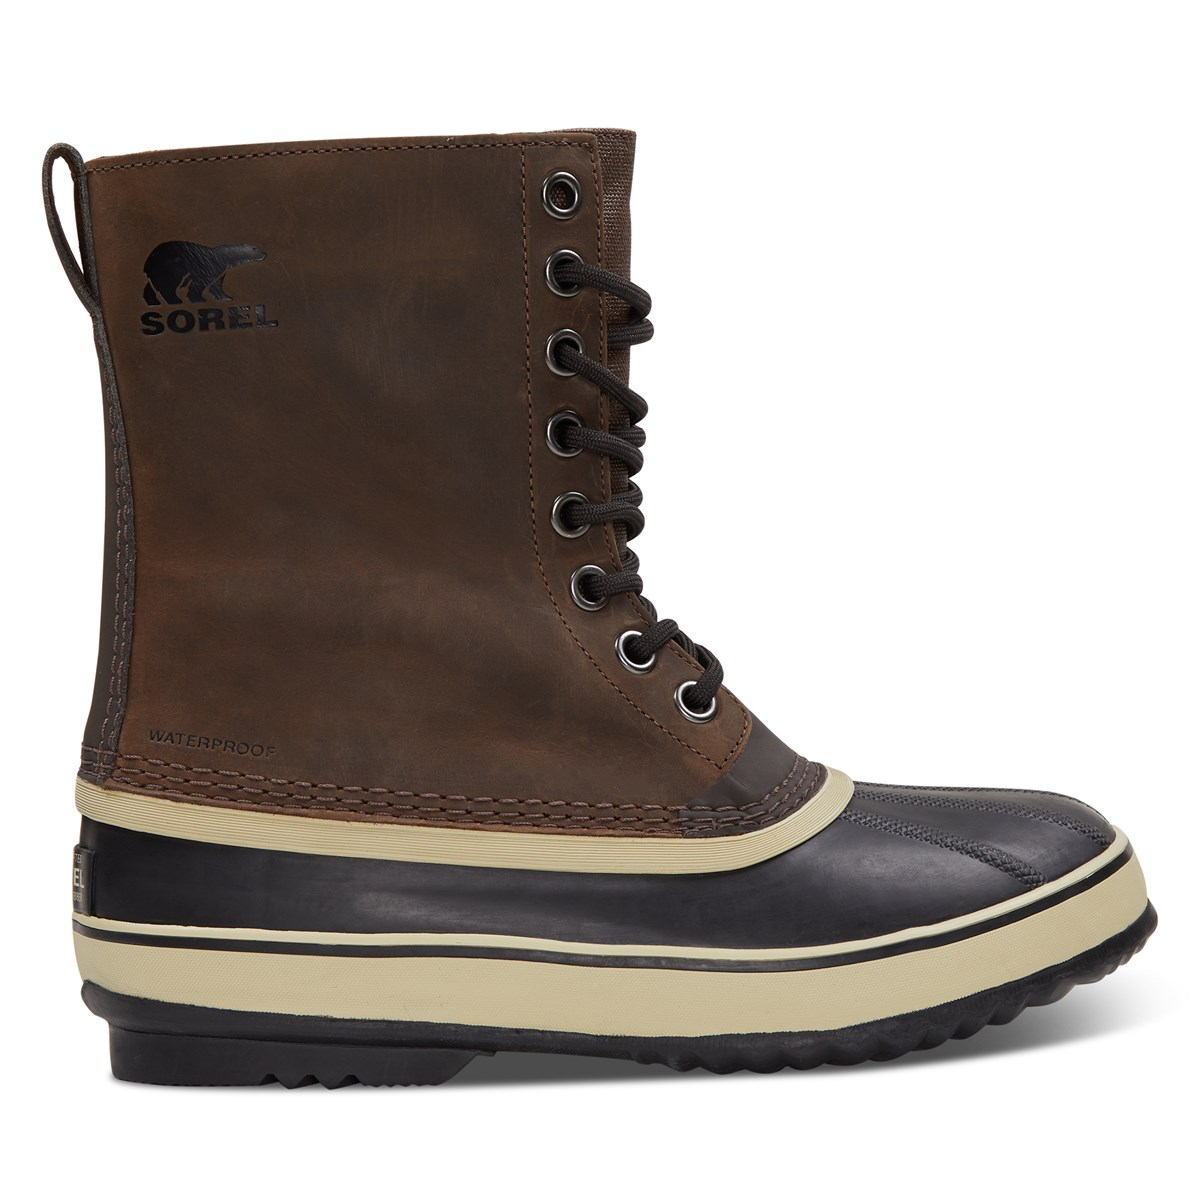 Men's 1964 LTR Boots in Brown